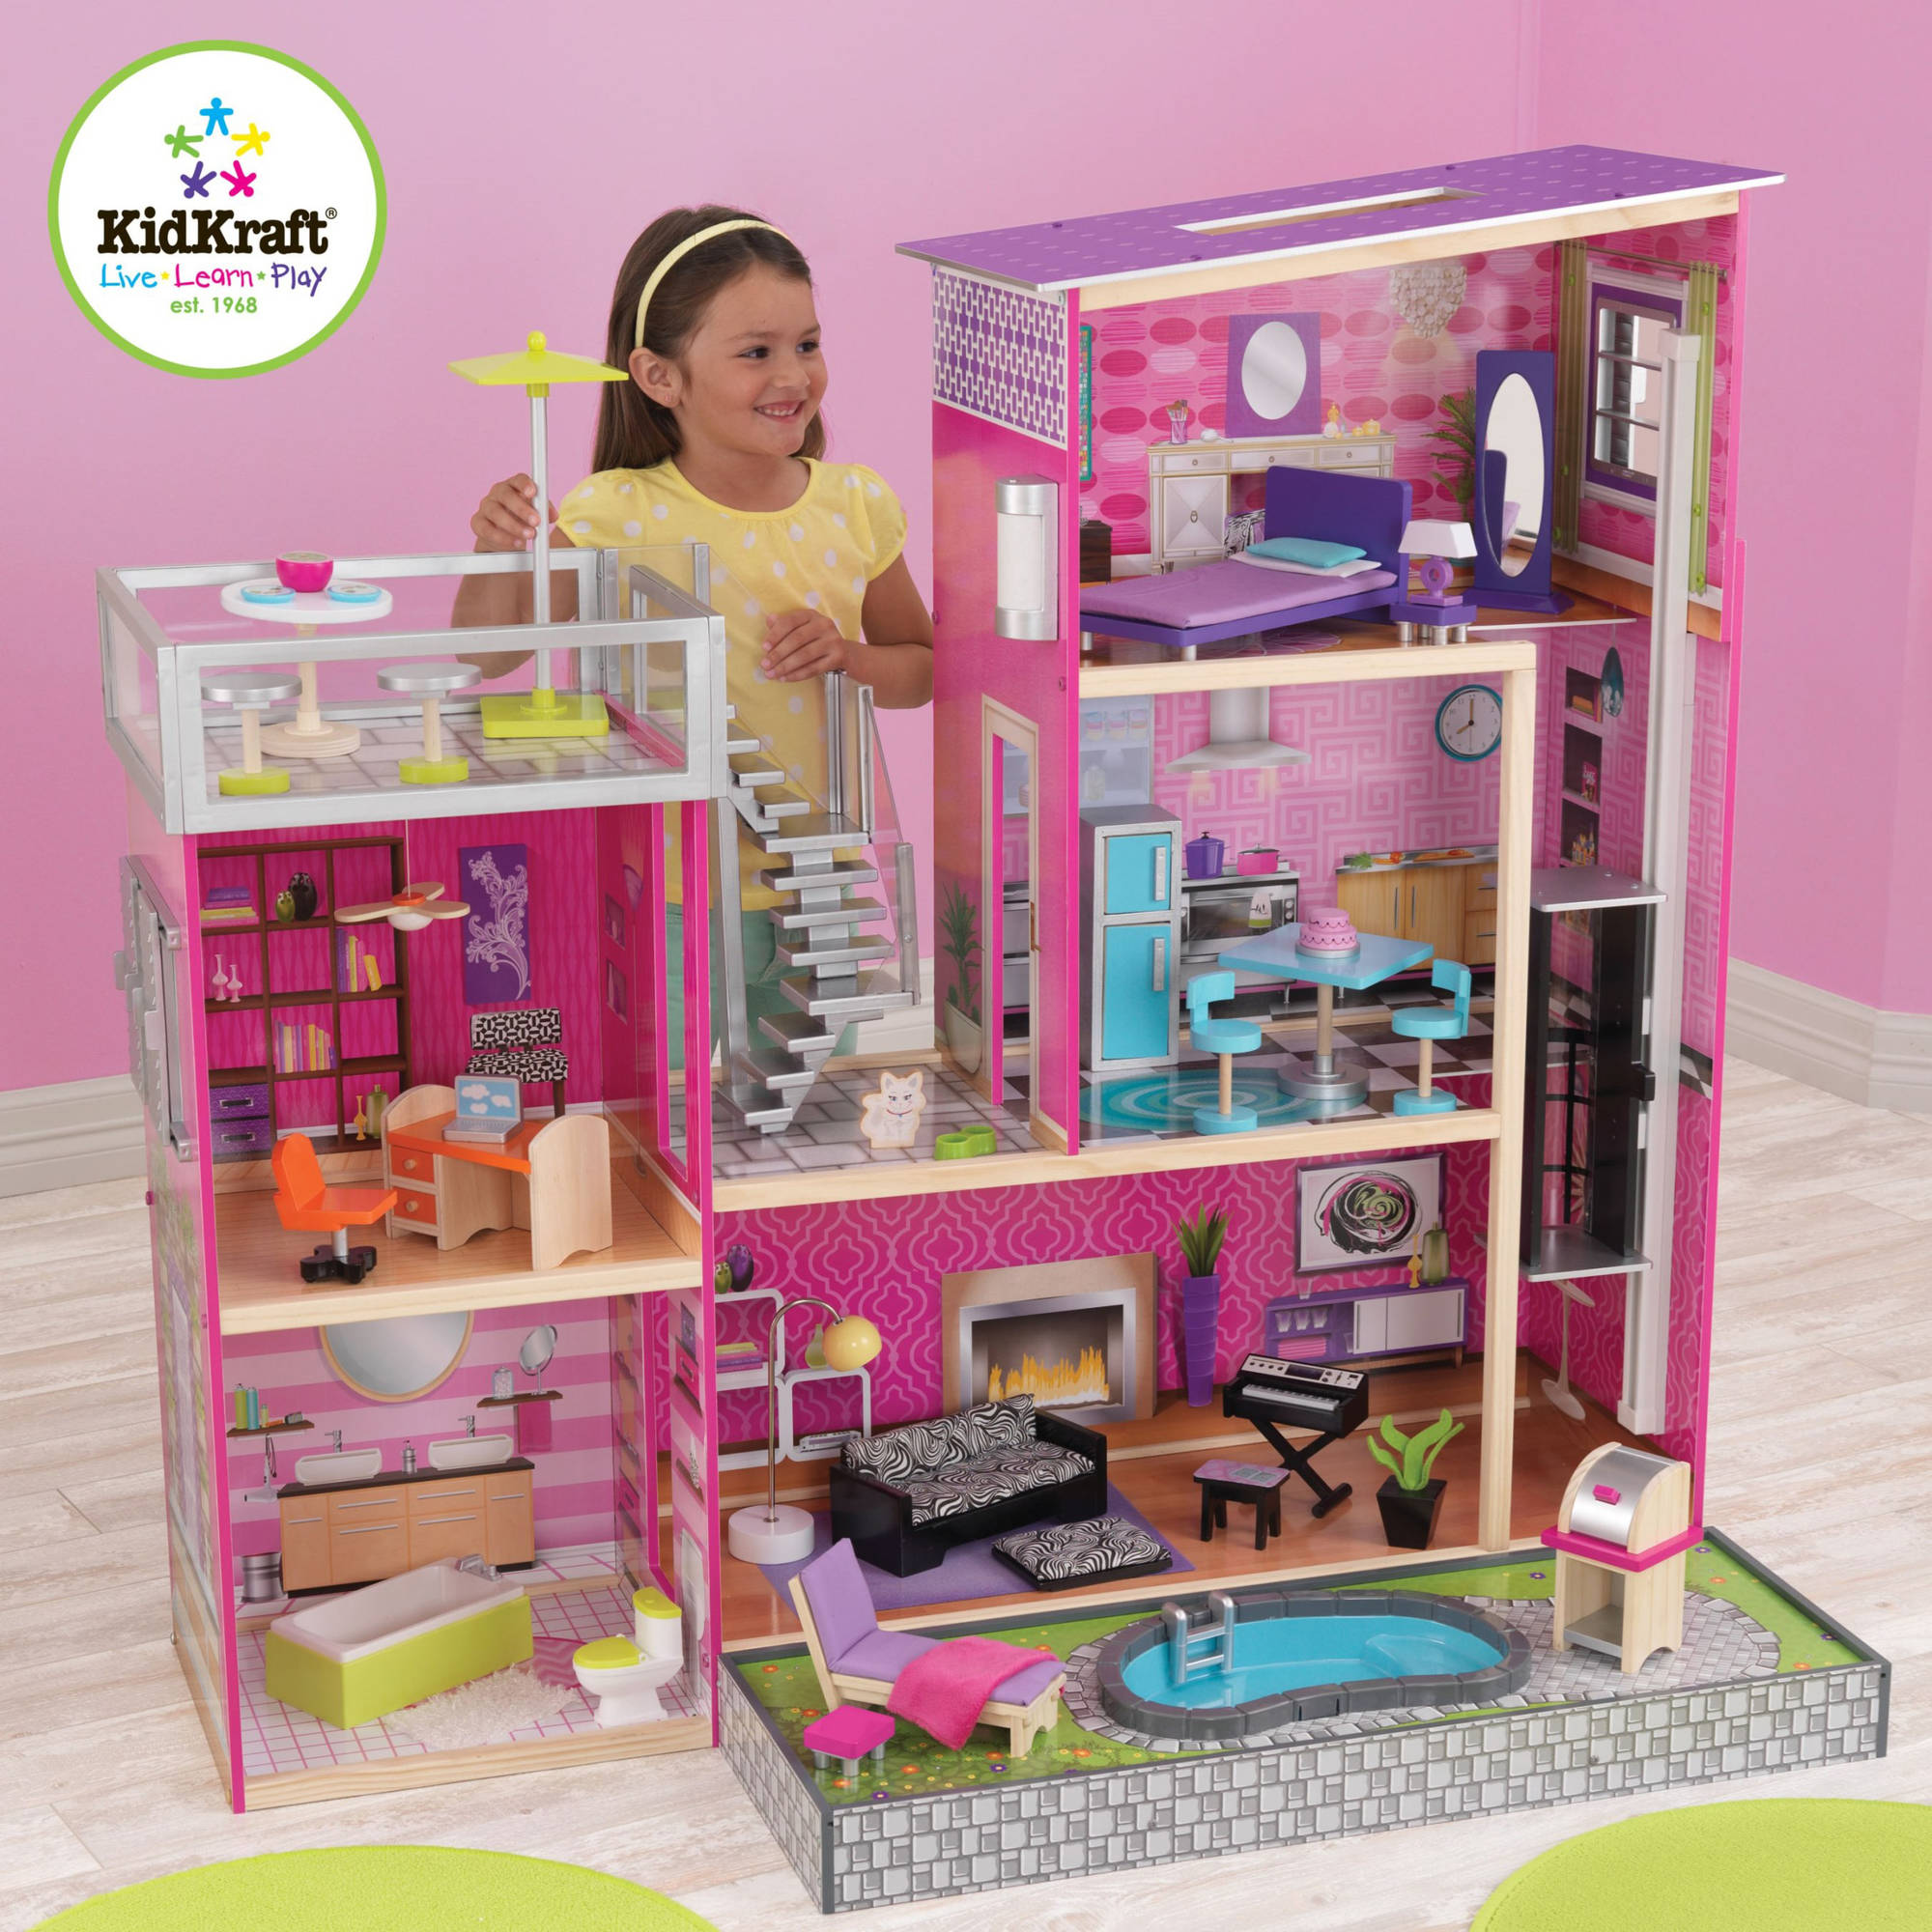 KidKraft Uptown Wooden Dollhouse With 35 Pieces of Furniture